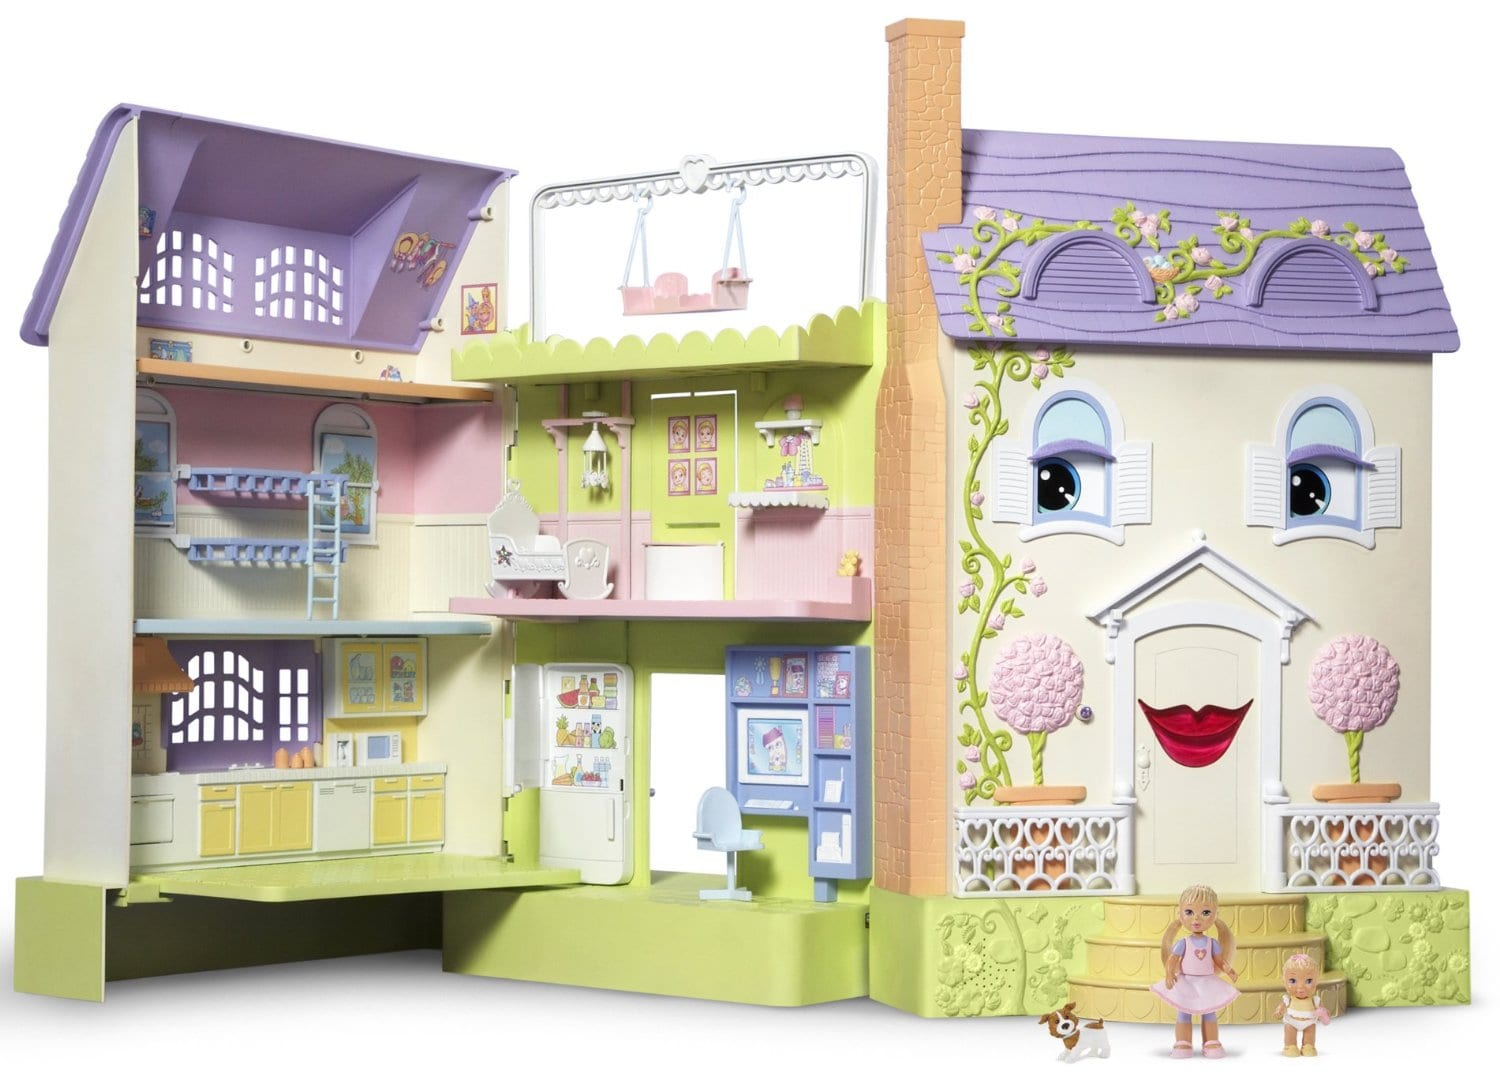 Dollhouse recommendations from Rookie Moms